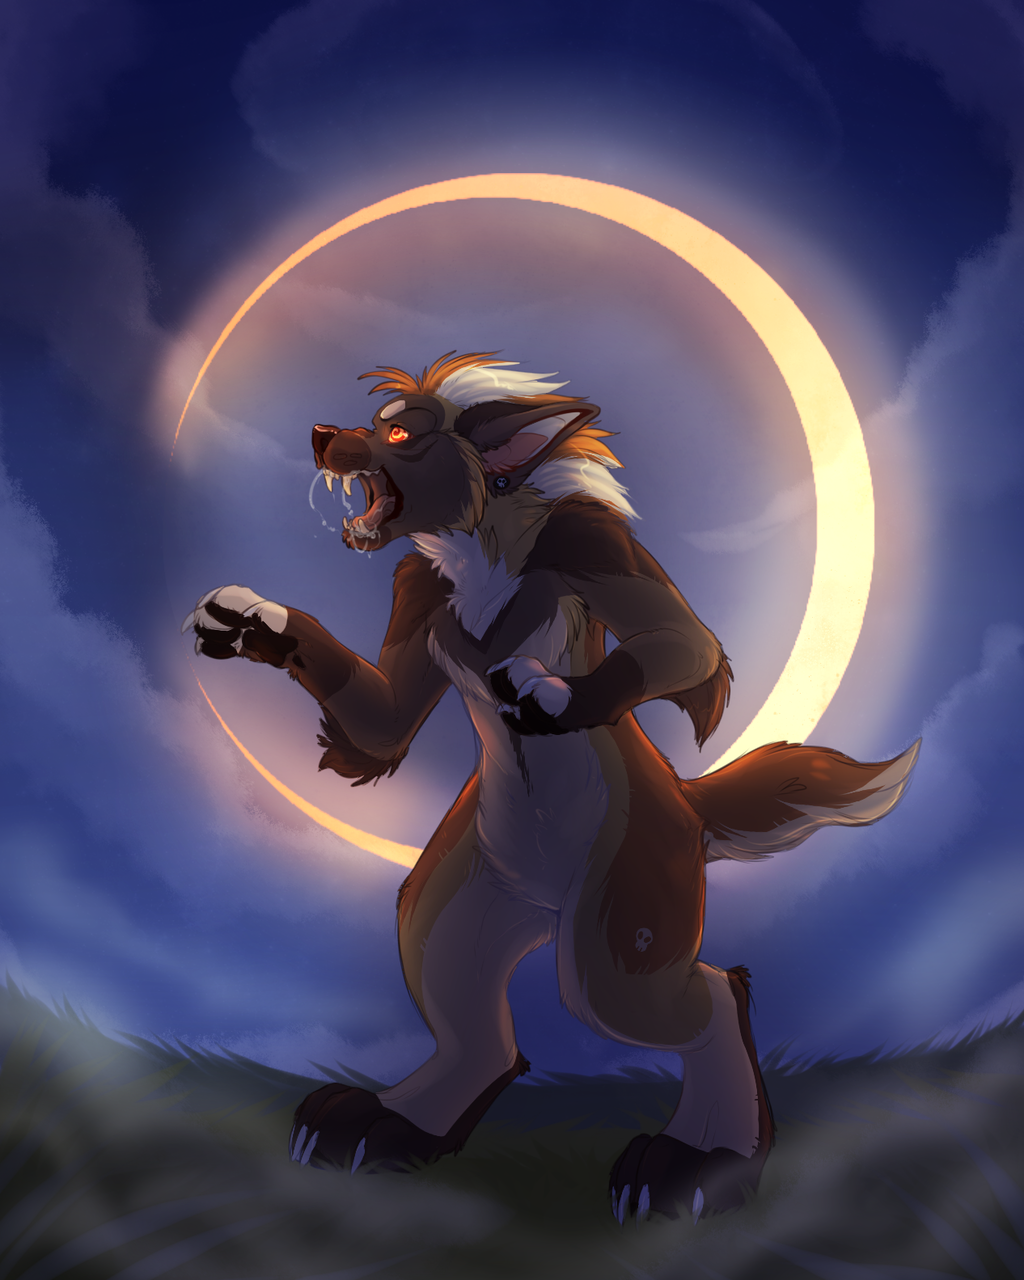 Most recent image: WEREWOOF